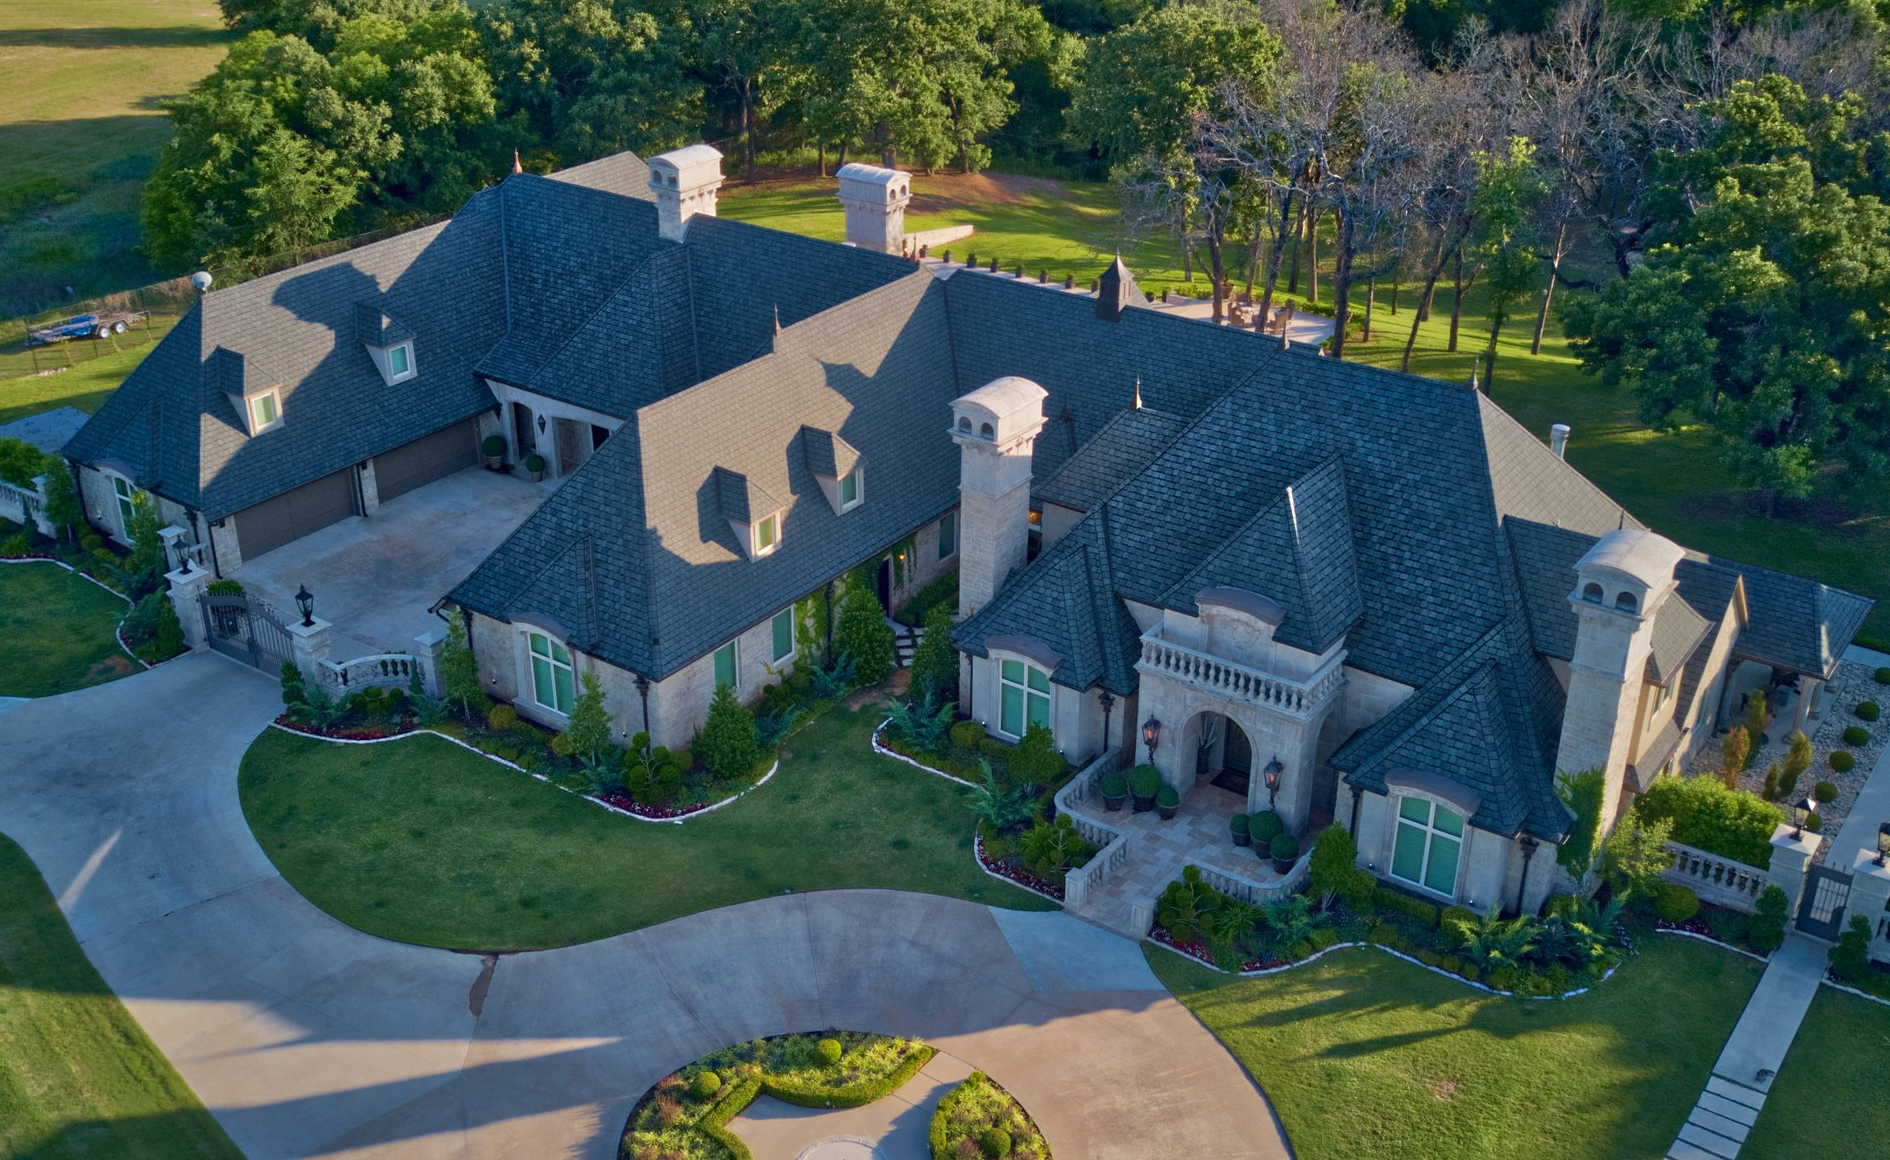 DRONE PHOTOshoot - $59 - - 5 DRONE PHOTOS FOR JUST $59- SAME DAY DELIVERY- $5 OPTION TO HIGHLIGHT PROPERTY LINES- JUST $5 PER ADDITIONAL PHOTO